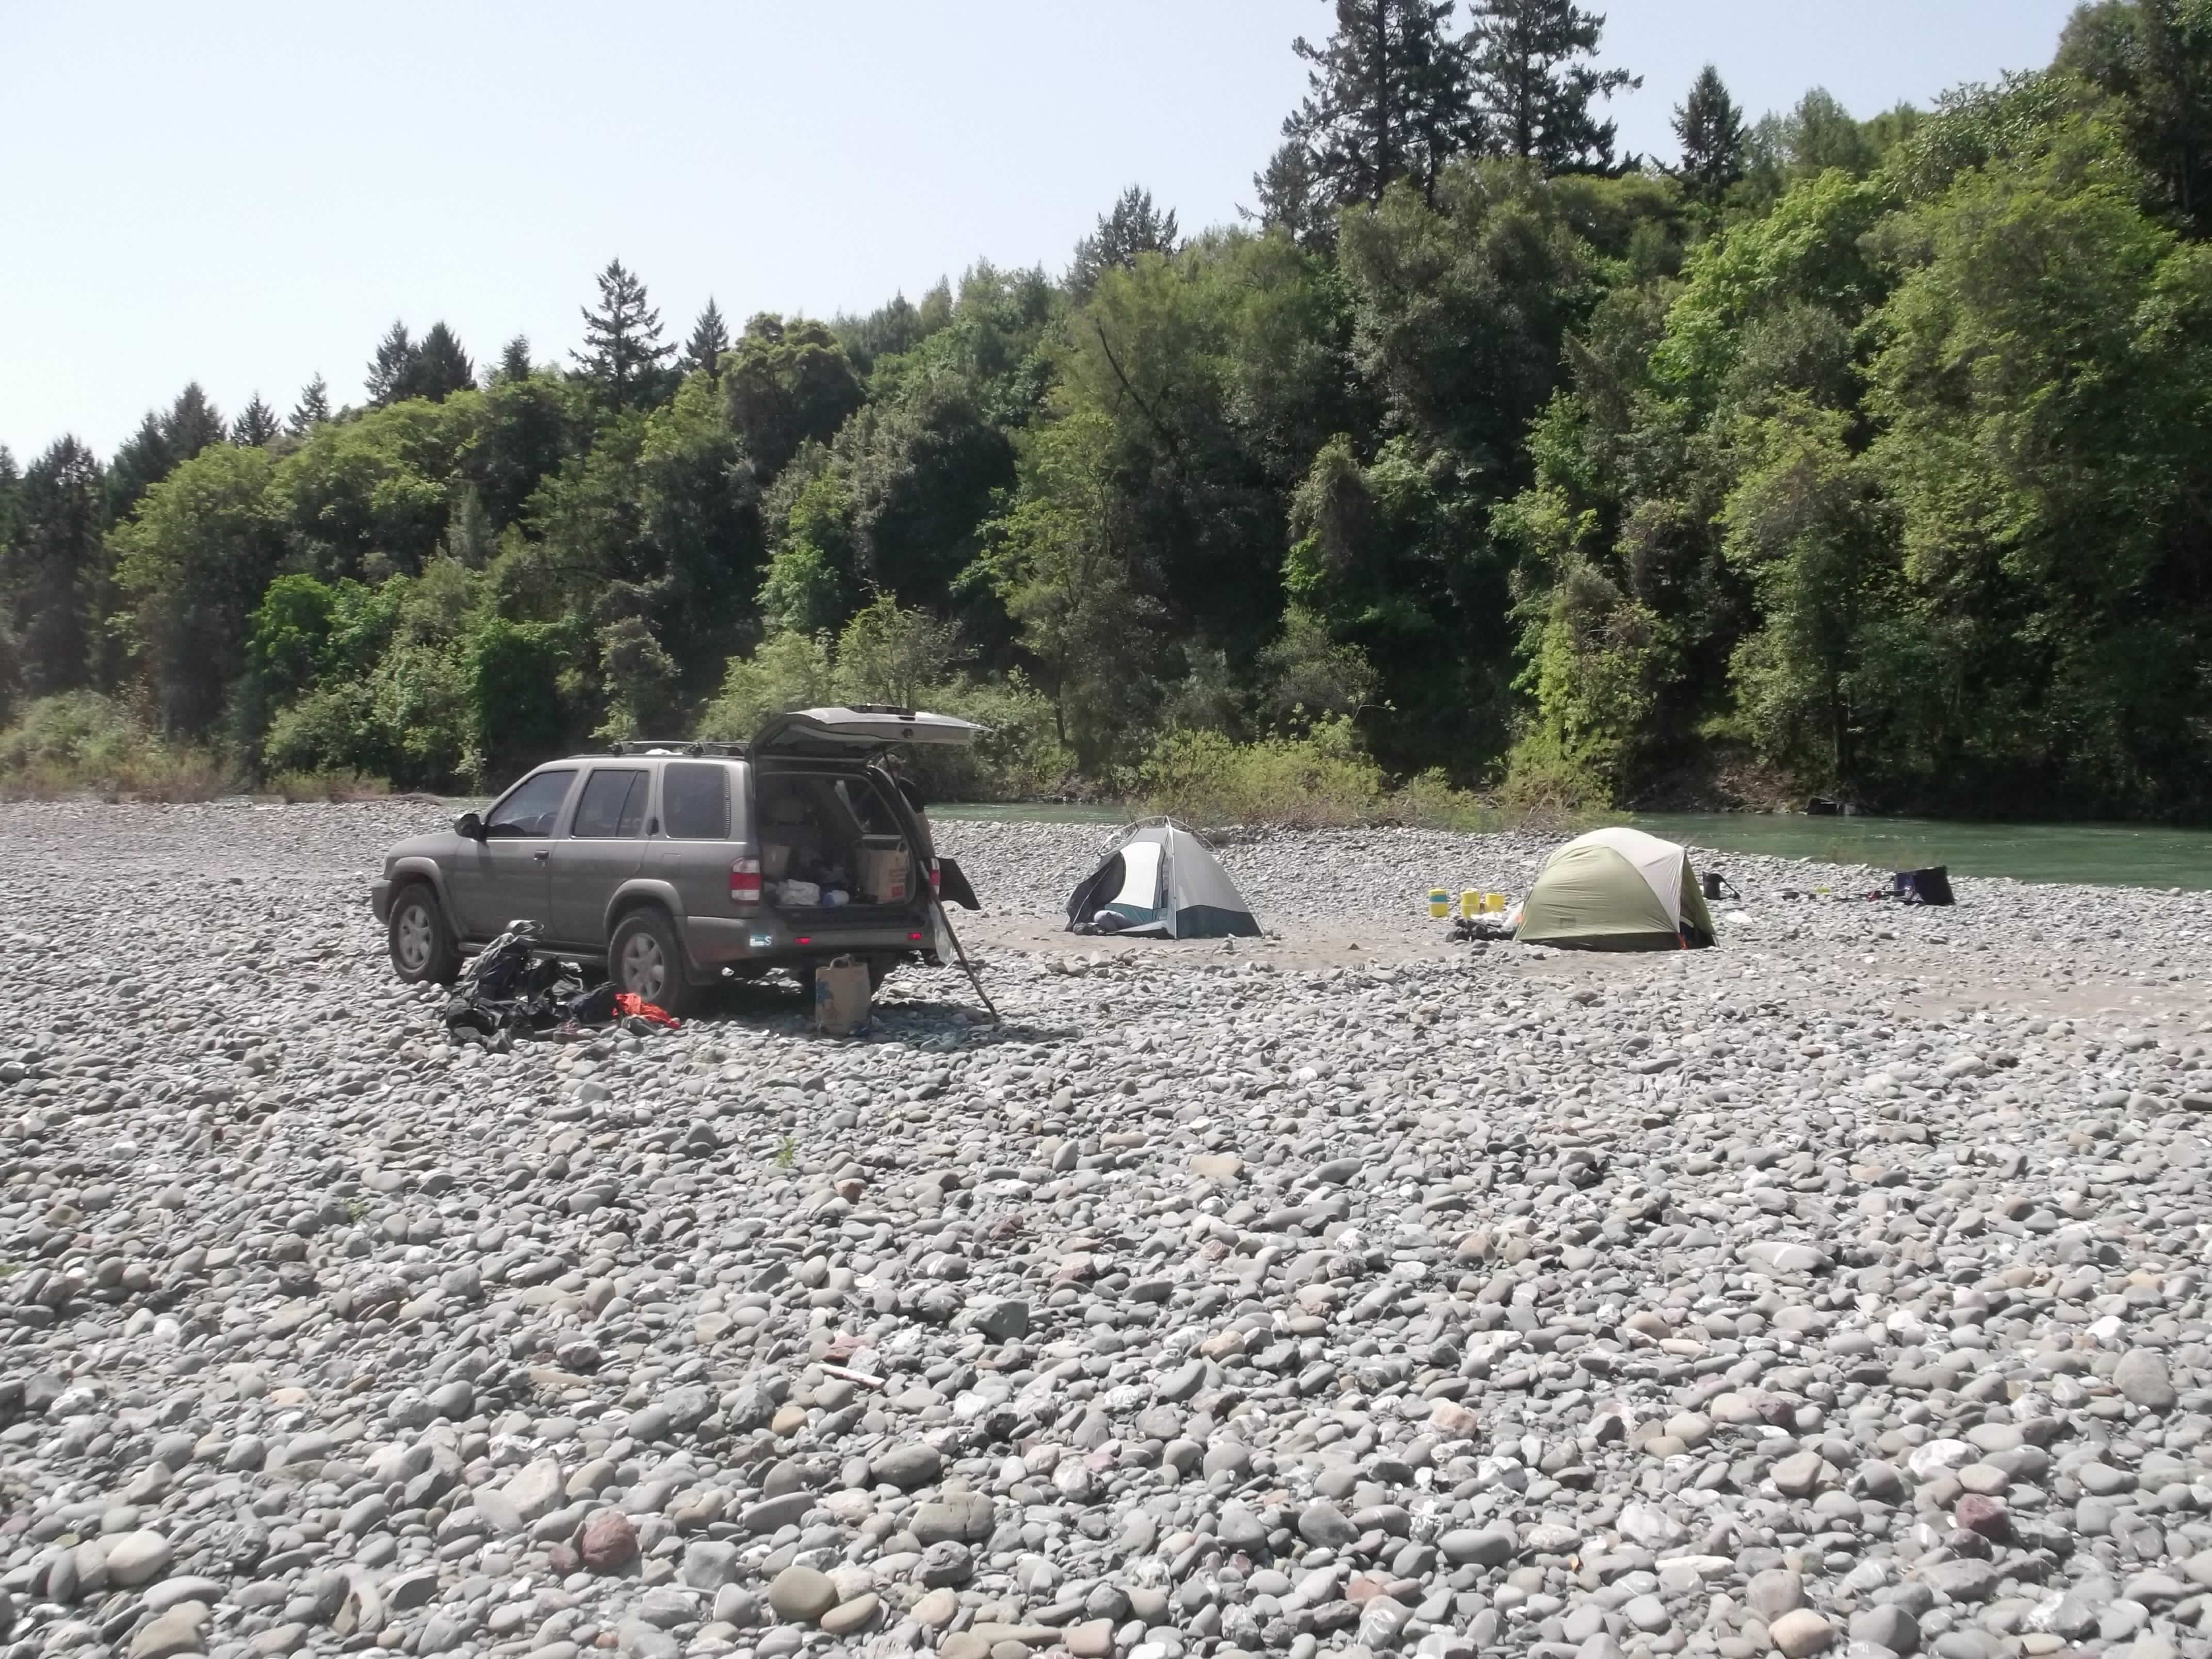 Eel River camp. (photo by D. Speredelozzi)